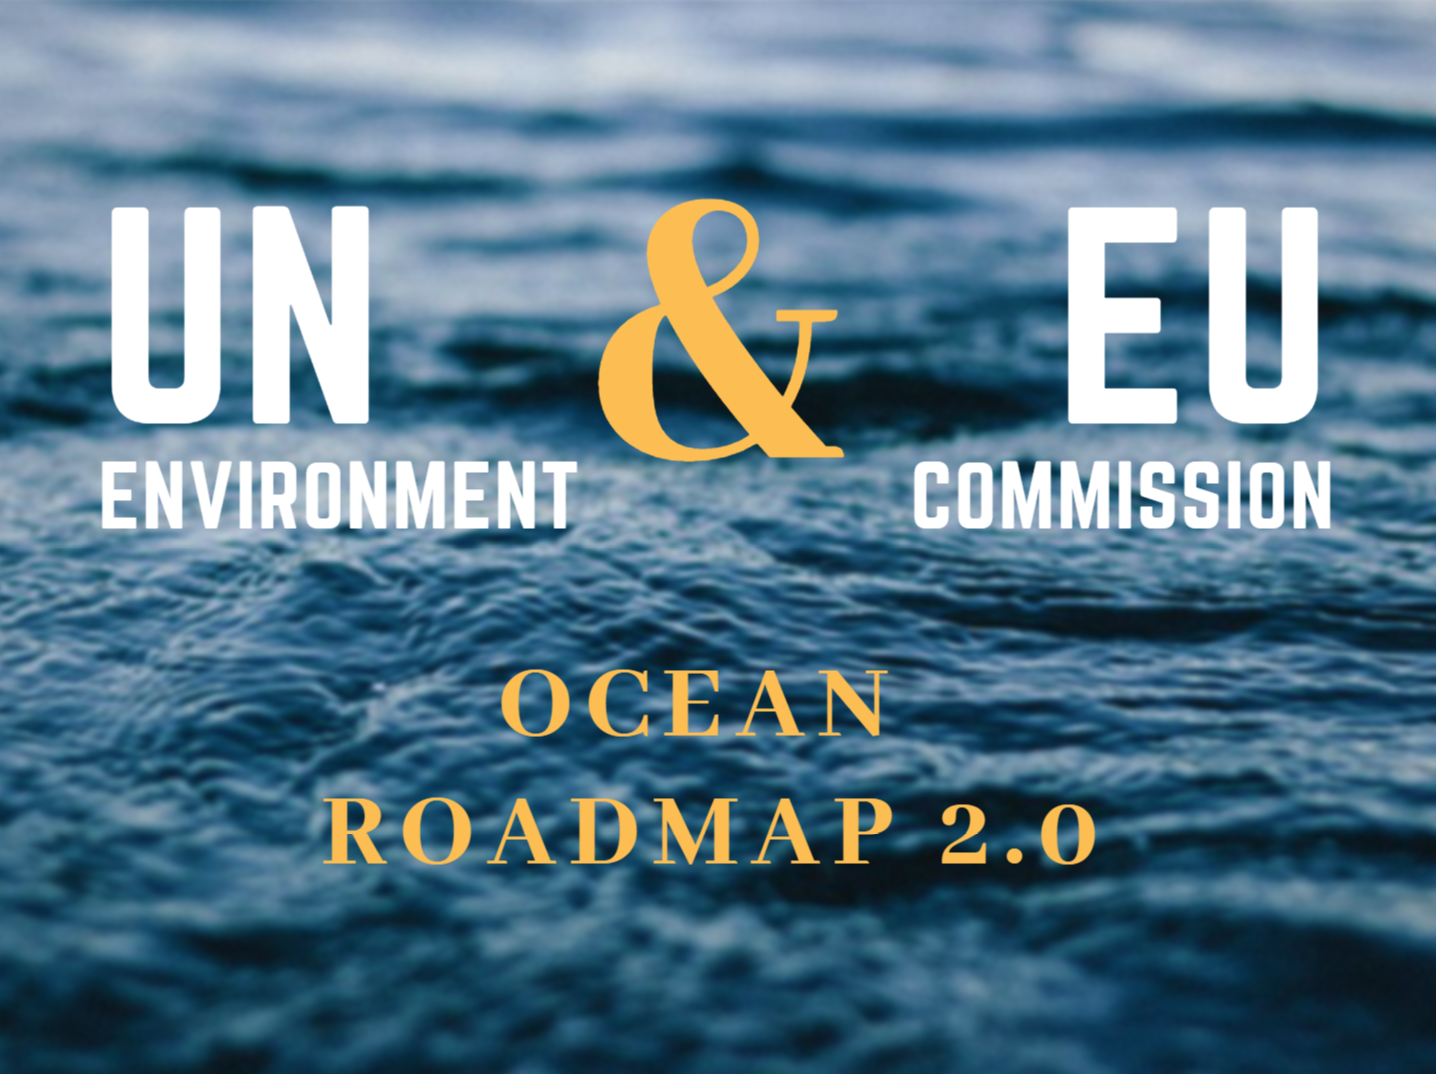 UN Environment and European Commission roadmap